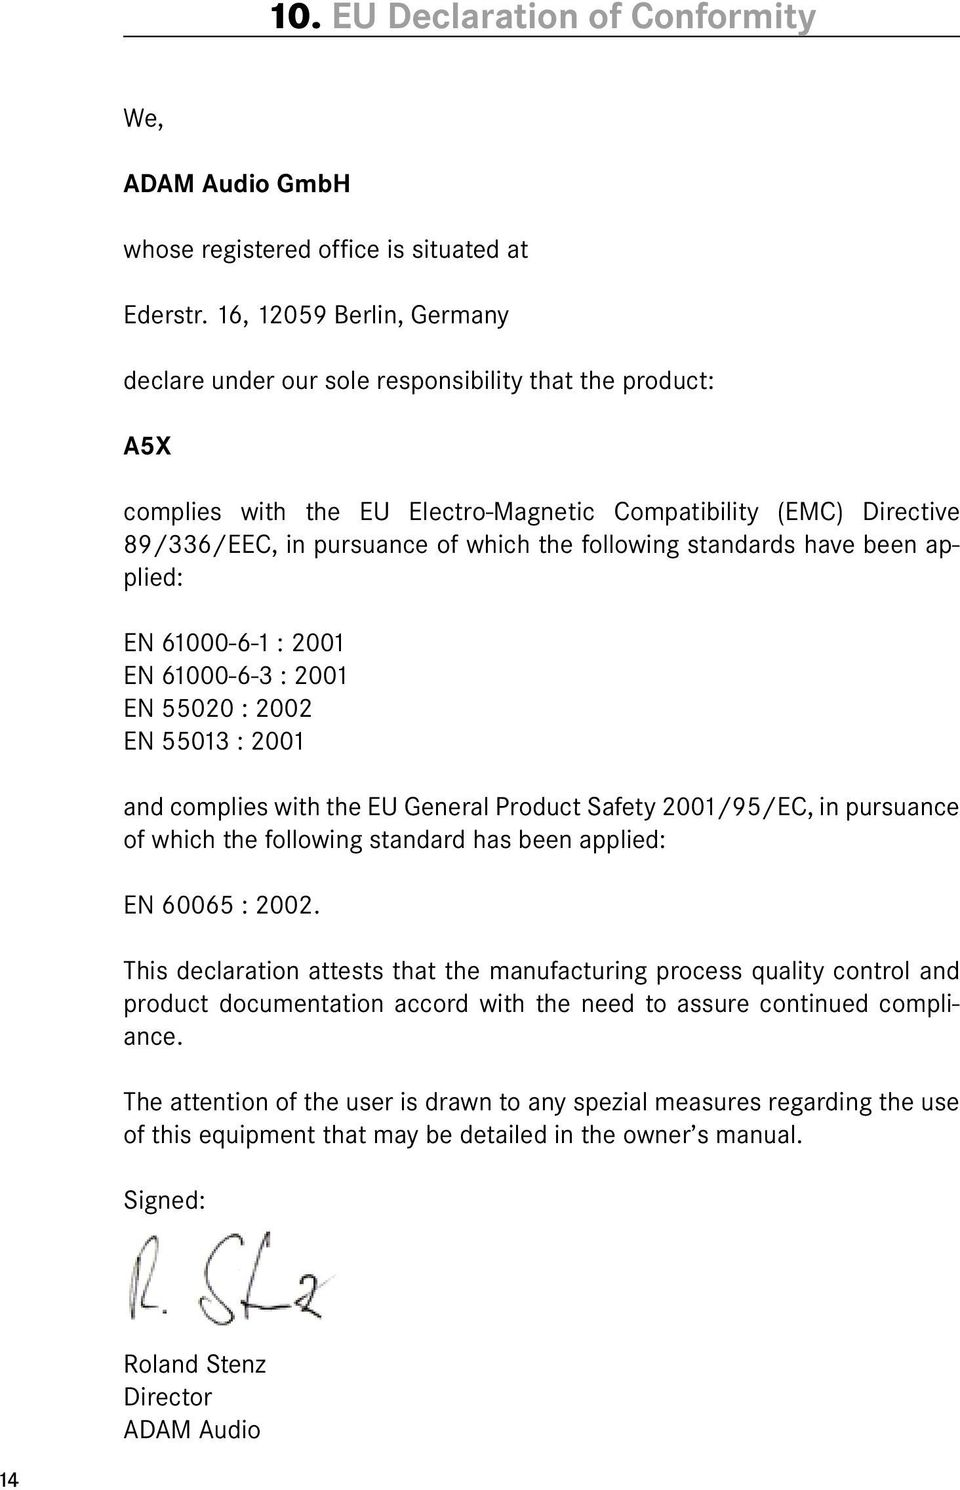 following standards have been applied: EN 61-6-1 : 21 EN 61-6-3 : 21 EN 552 : 22 EN 5513 : 21 and complies with the EU General Product Safety 21/95/EC, in pursuance of which the following standard